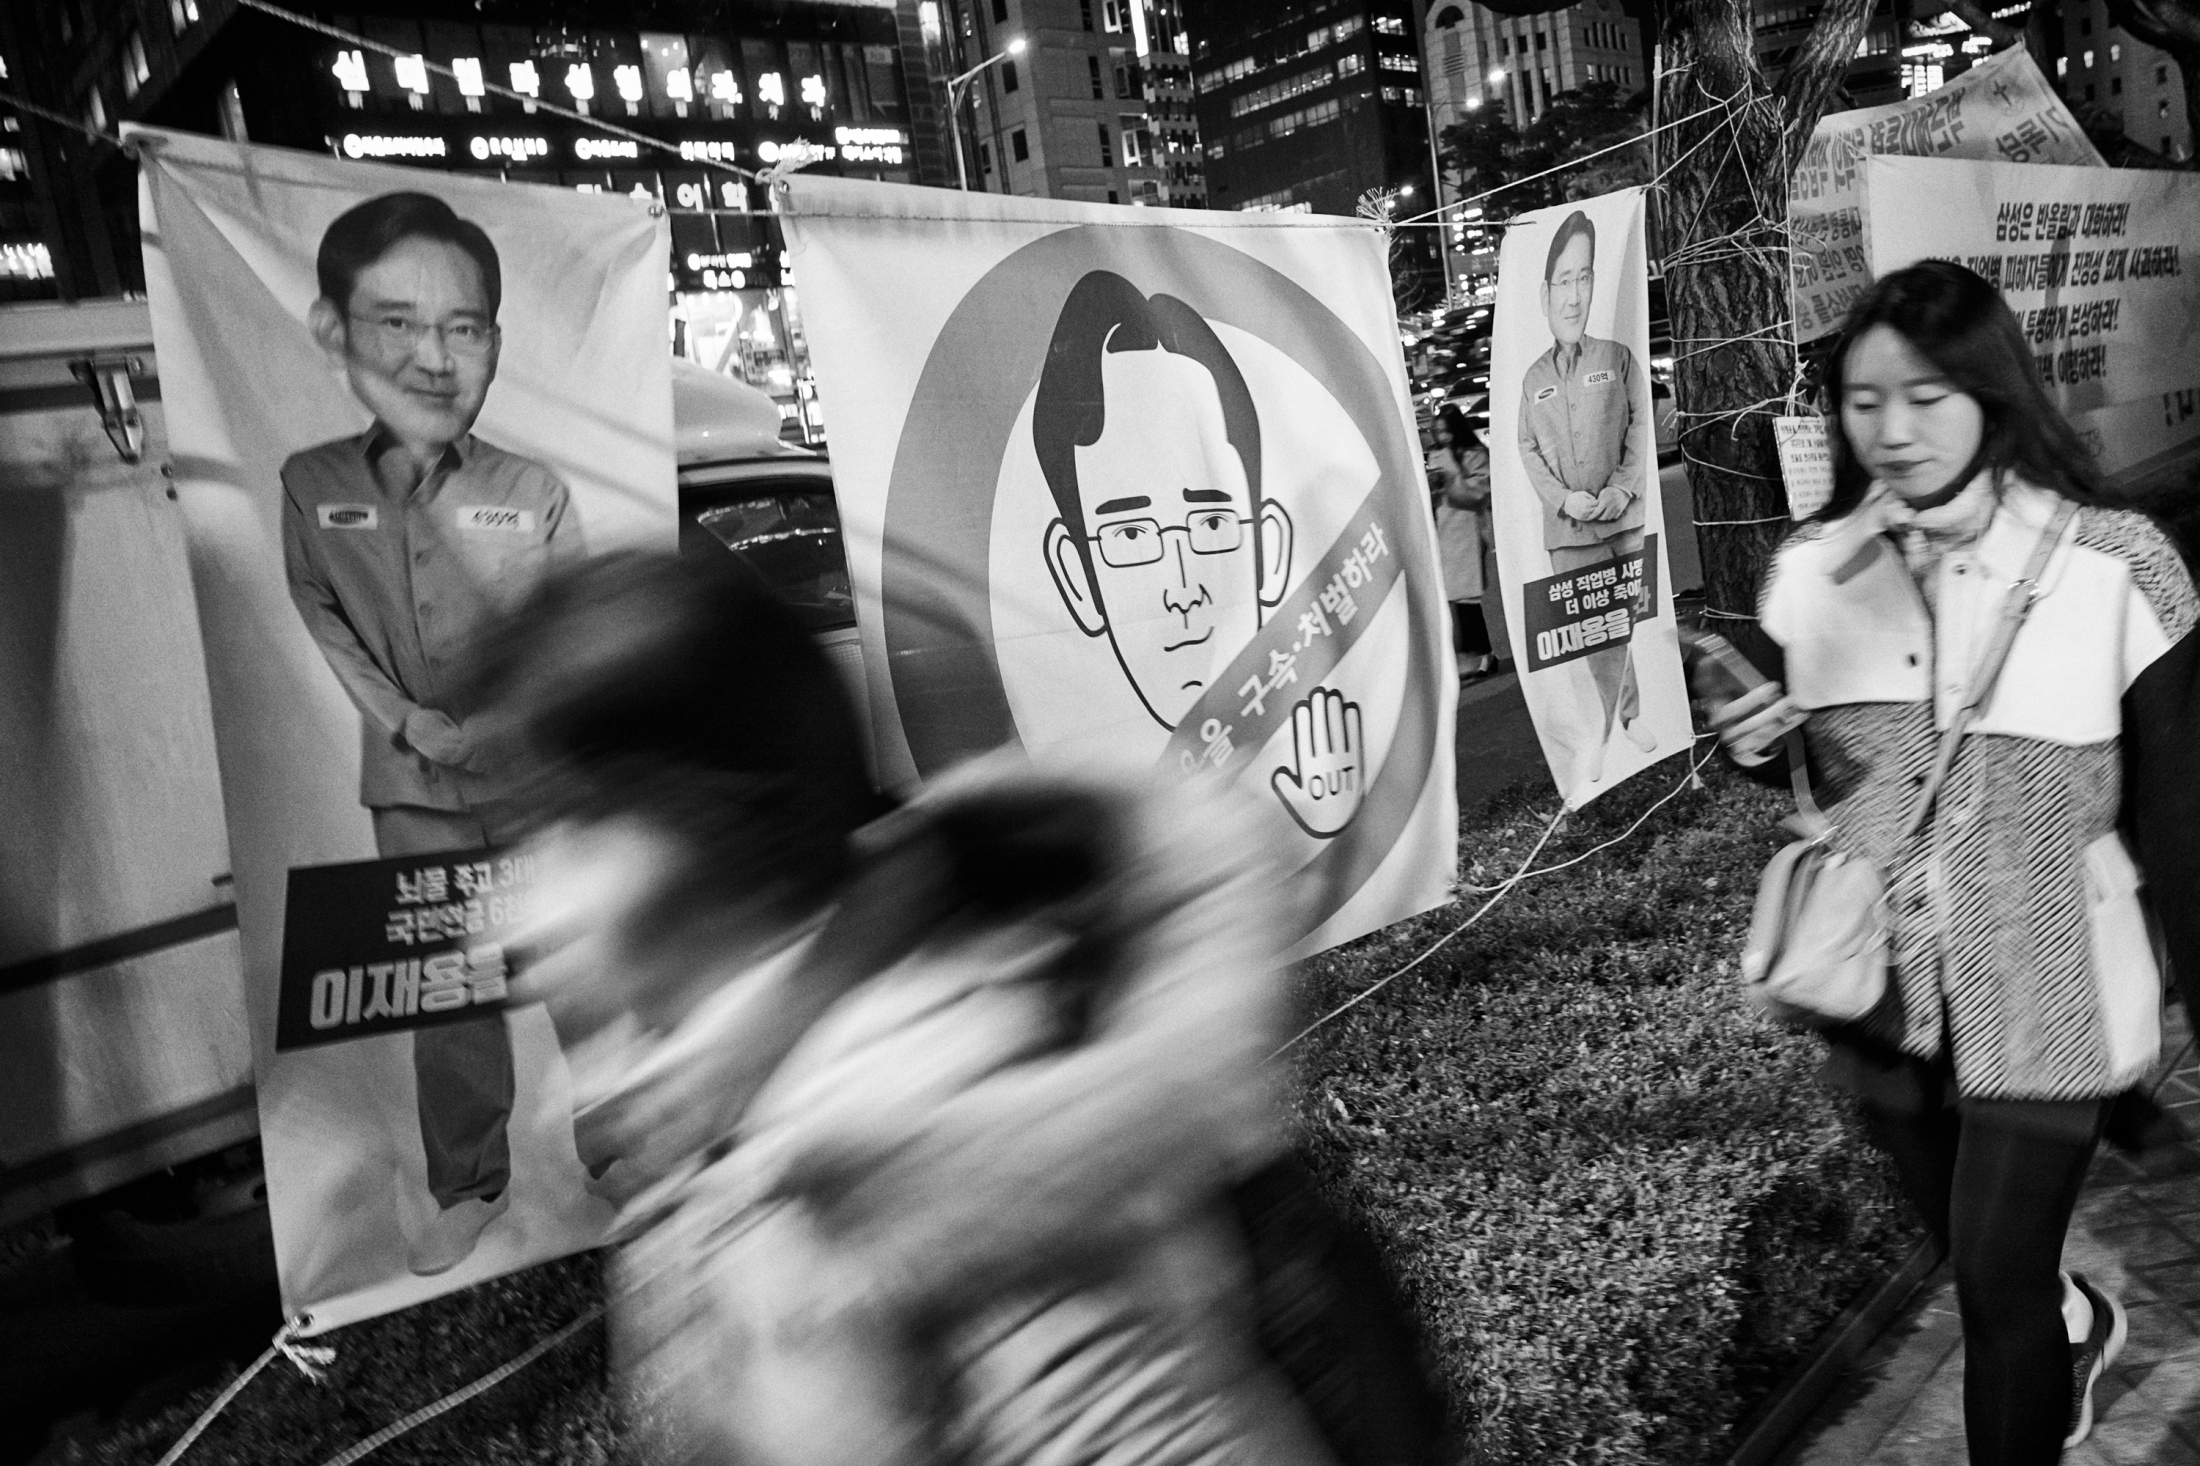 "Banners with photoshopped images of Lee Jae-yong, also known as Jay Y. Lee in the West, the vice chairman of Samsung Group and a grandson of Lee Byung-chul the founder of Samsung are seen on the street in front of Samsung Town Headquarters in Seoul, South Korea on Mar. 6, 2017. The banners were set up by the protest group who supports the victims of Samsung semiconductor chip factories and plead guilty of Mr. Lee for victims' death and also corruption. The victims' families and ""Banolim,"" an activist group which supports and helps the victims hold the memorial ritual for the victims on every March 6th since 2008. The victims who worked in Samsung Electronics semiconductor chip and display factories died of critical disease like leukemia, cancer and brain tumor due to toxic chemicals they had handled during manufacturing processes. According to Banolim, 112 former semiconductor chip and display factory workers have died among 306 reported cases. Lee was arrested on Feb. 17, 2017 for his alleged role in the corruption scandal which led to the impeachment of President Park Guen-hye. Lee was accused of bribery, embezzlement and hiding assets overseas and perjury by the special prosecutors' team which investigate the worst corruption scandal in South Korean history."